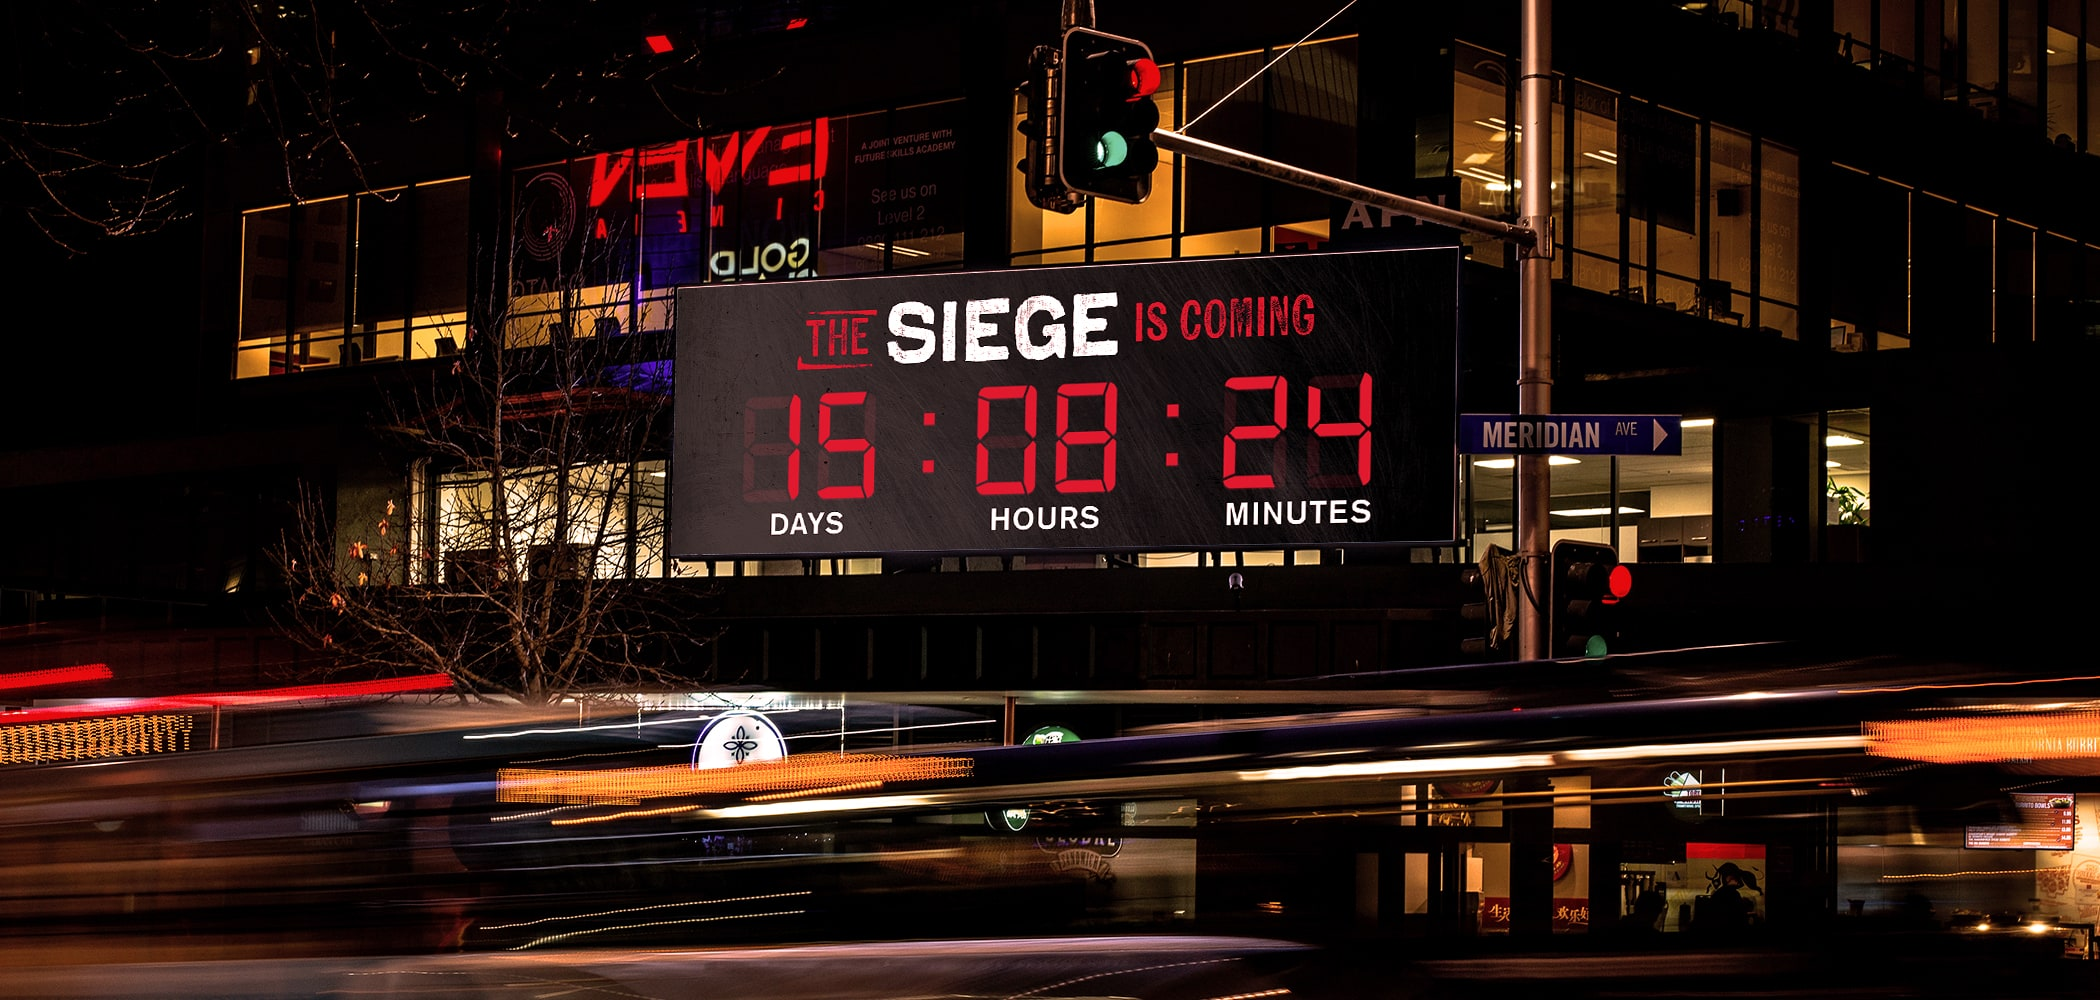 Photo of countdown timer on outdoor board - The Siege is Coming